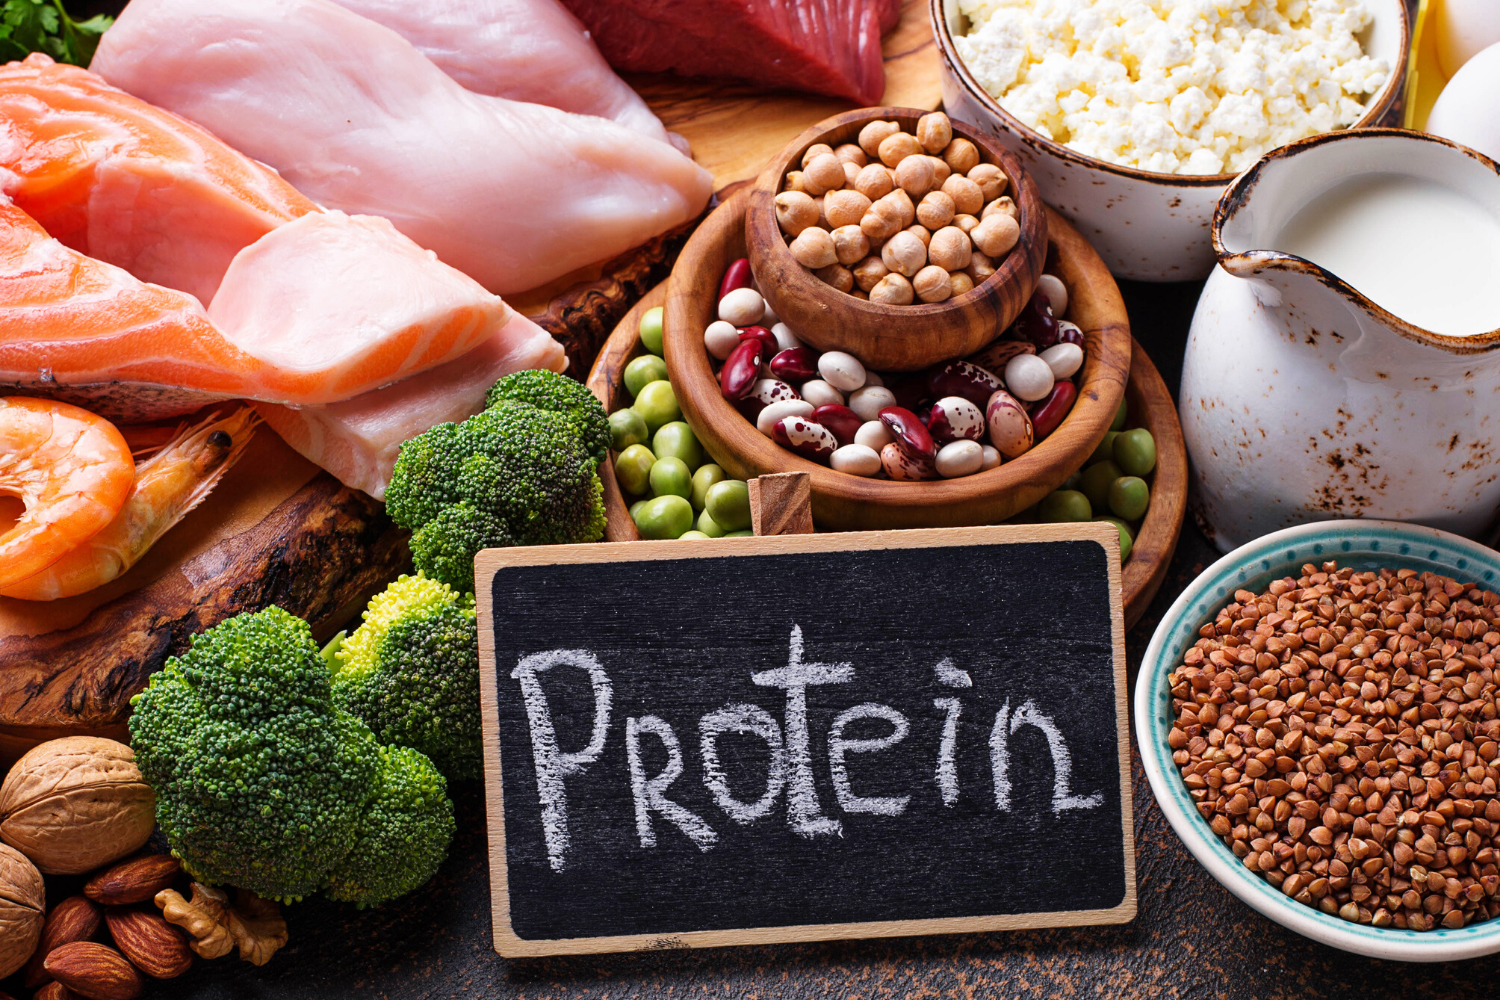 Blackboard with the word 'Protein' written on it in white chalk. The board is surrounded by various bowls of legumes, peas, chickpeas, broccoli, almonds, walnuts, chicken, salmon, prawns and red meat